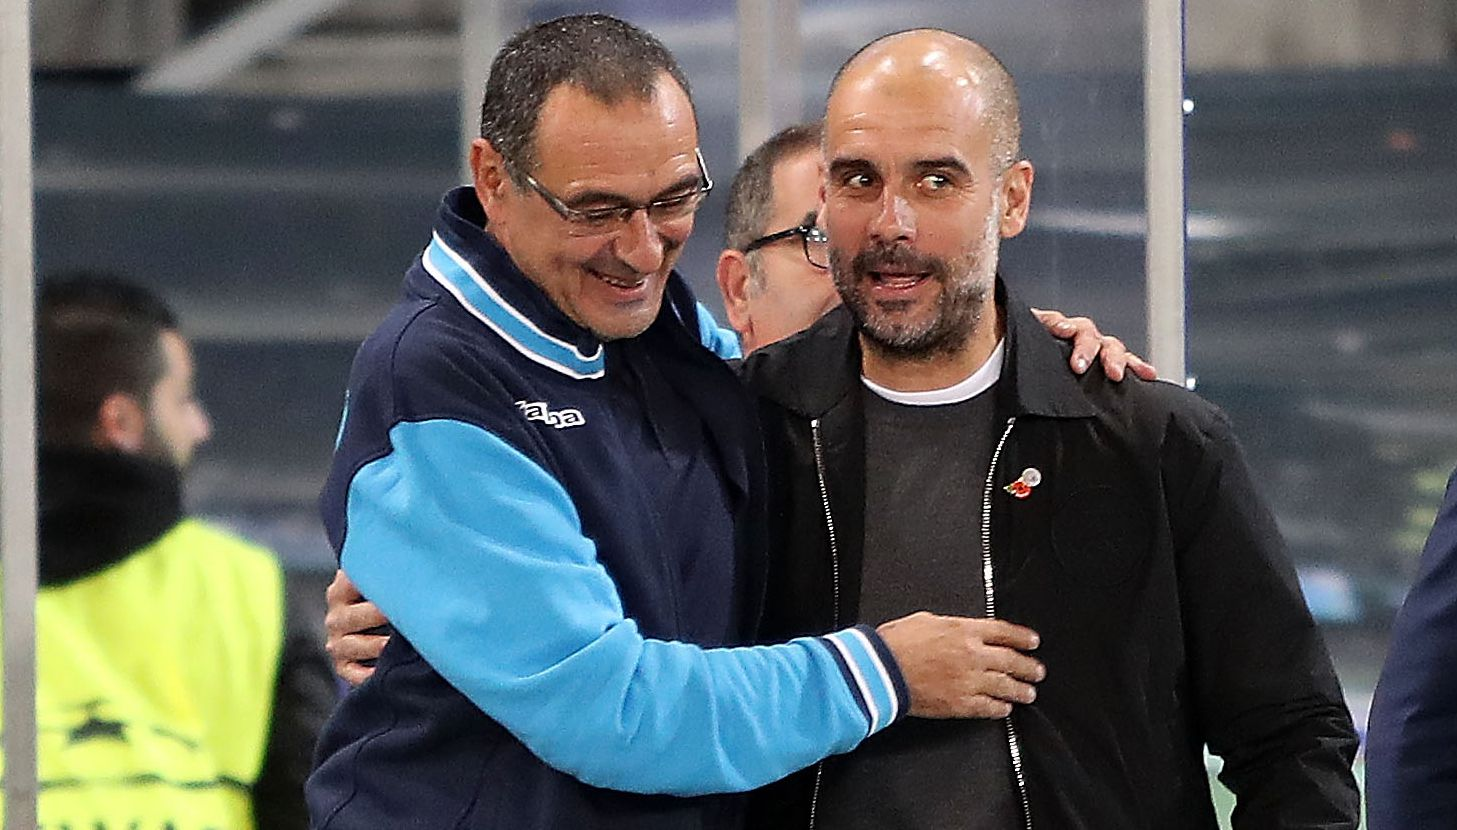 Sarri Guardiola Getty Images